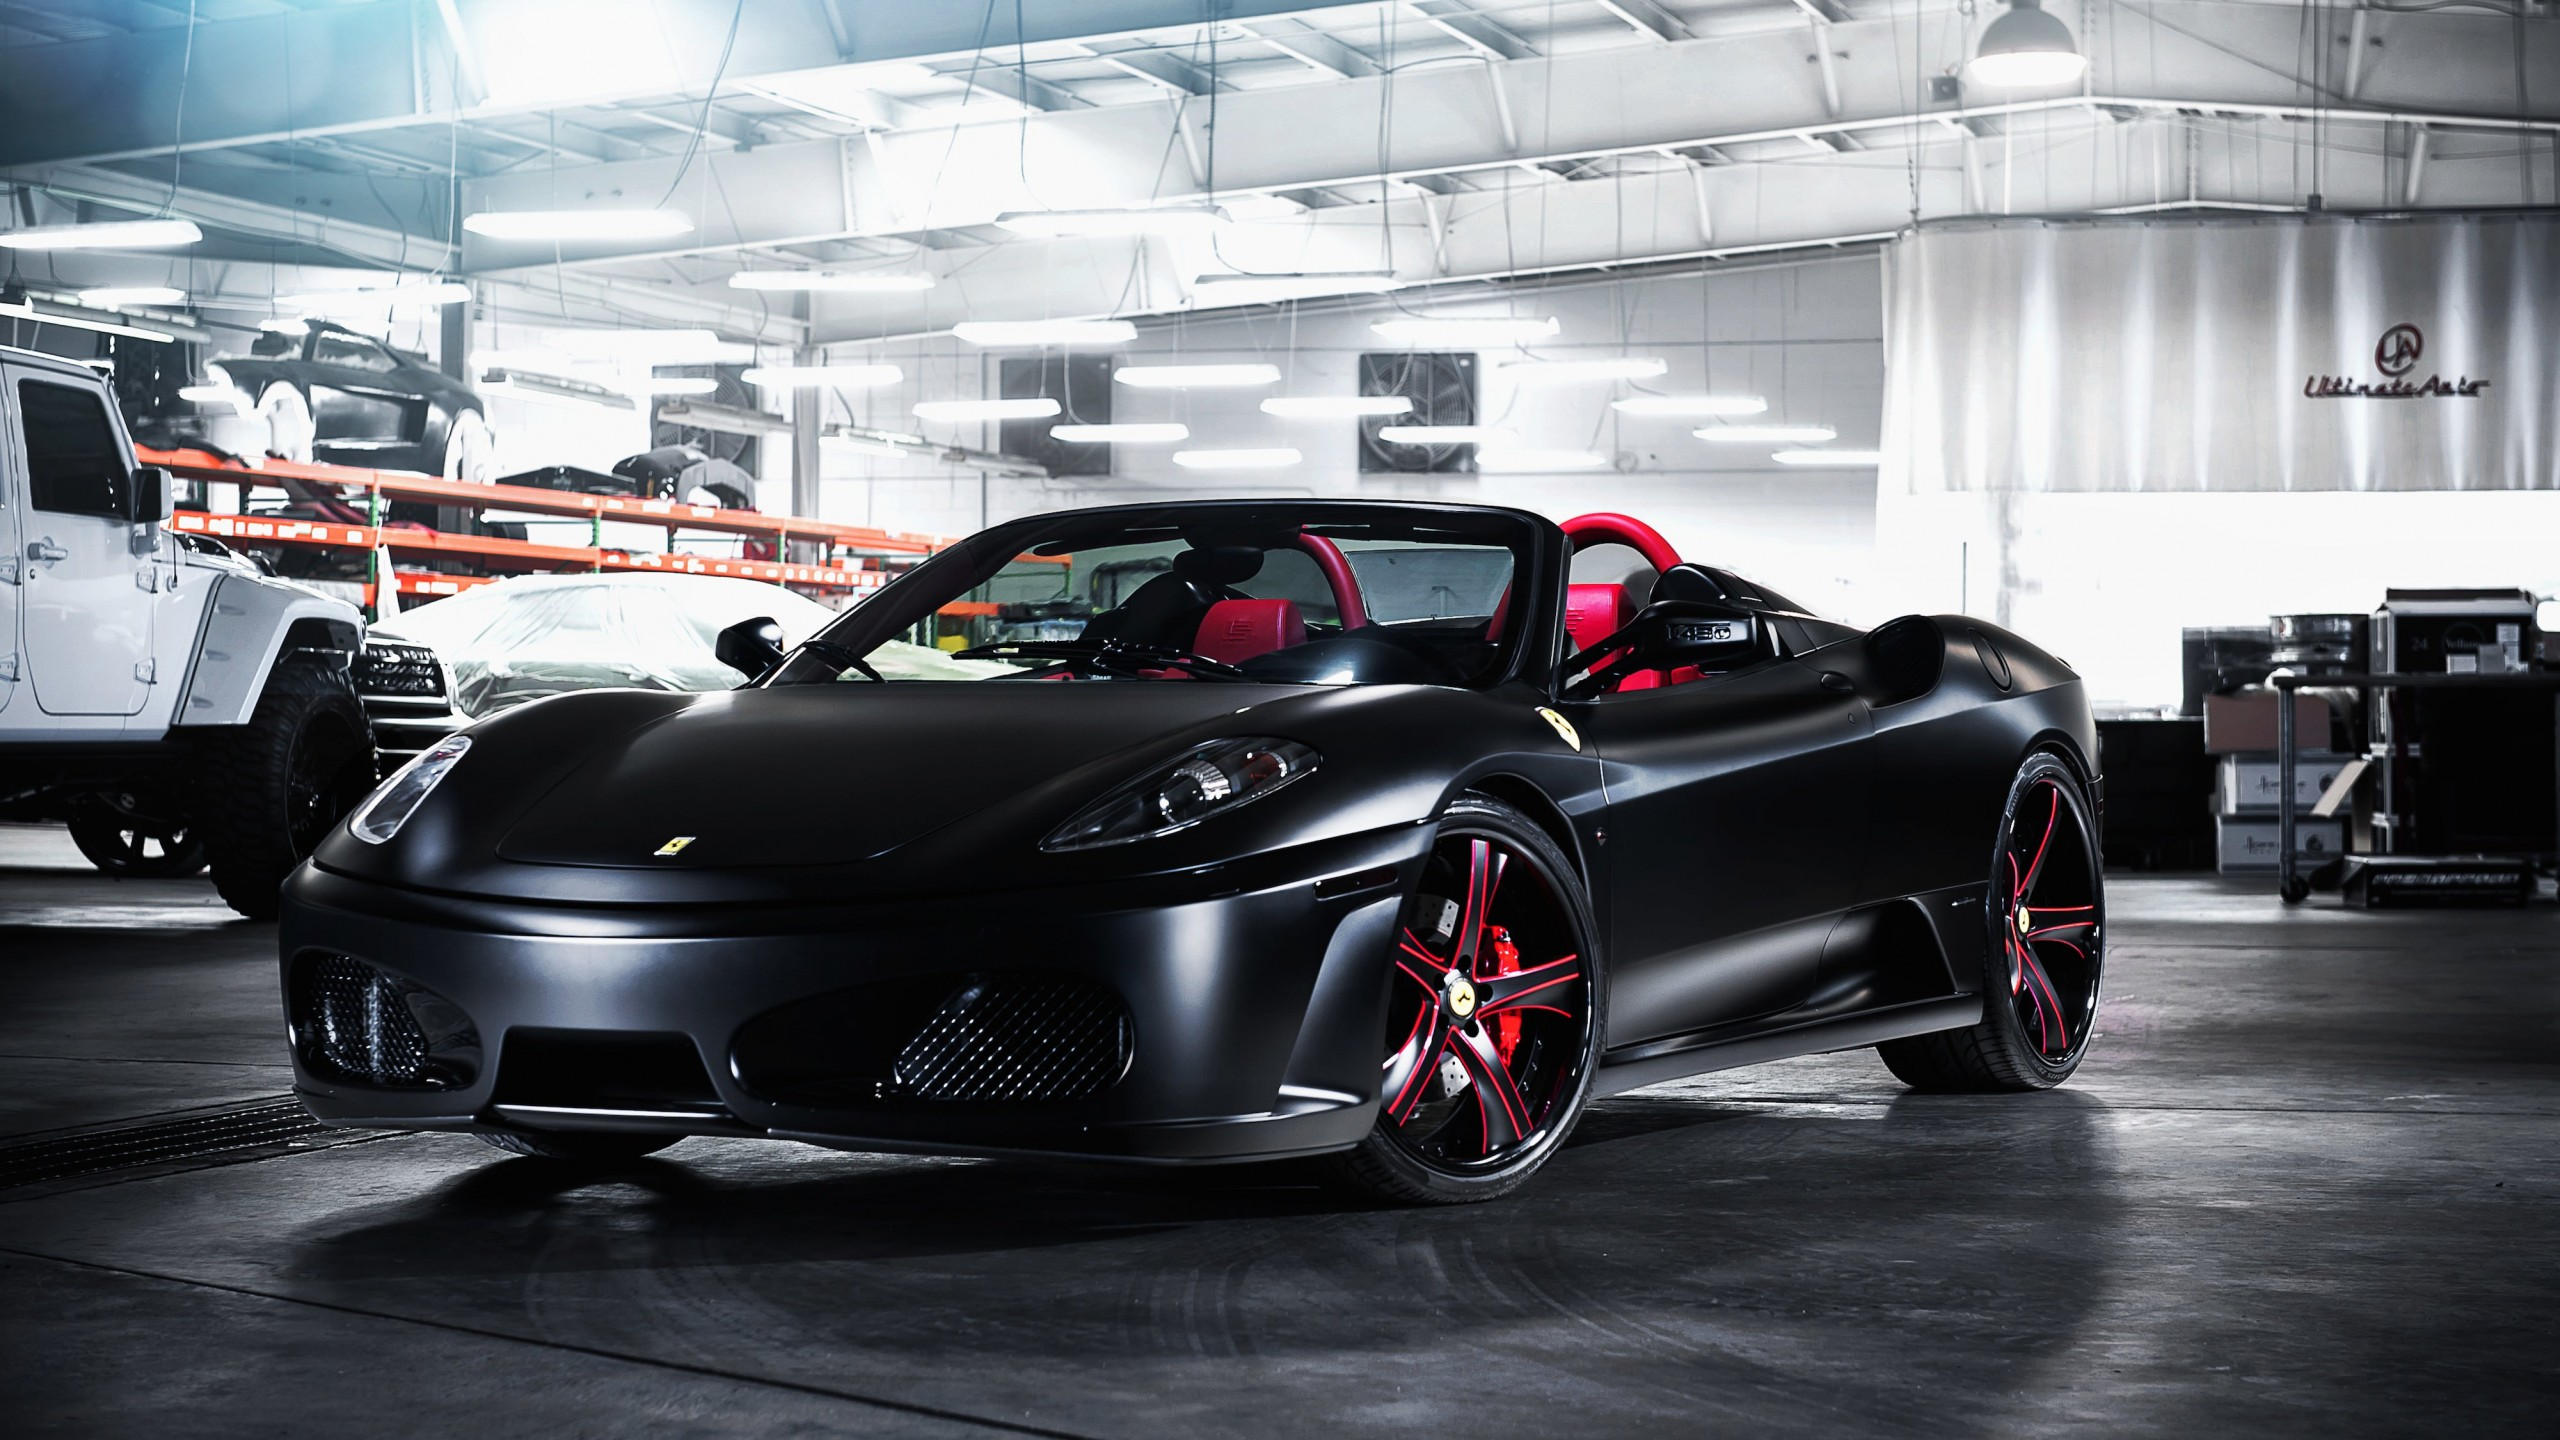 Matte Black Ferrari F430 on Savini Wheels Wallpaper for Social Media YouTube Channel Art